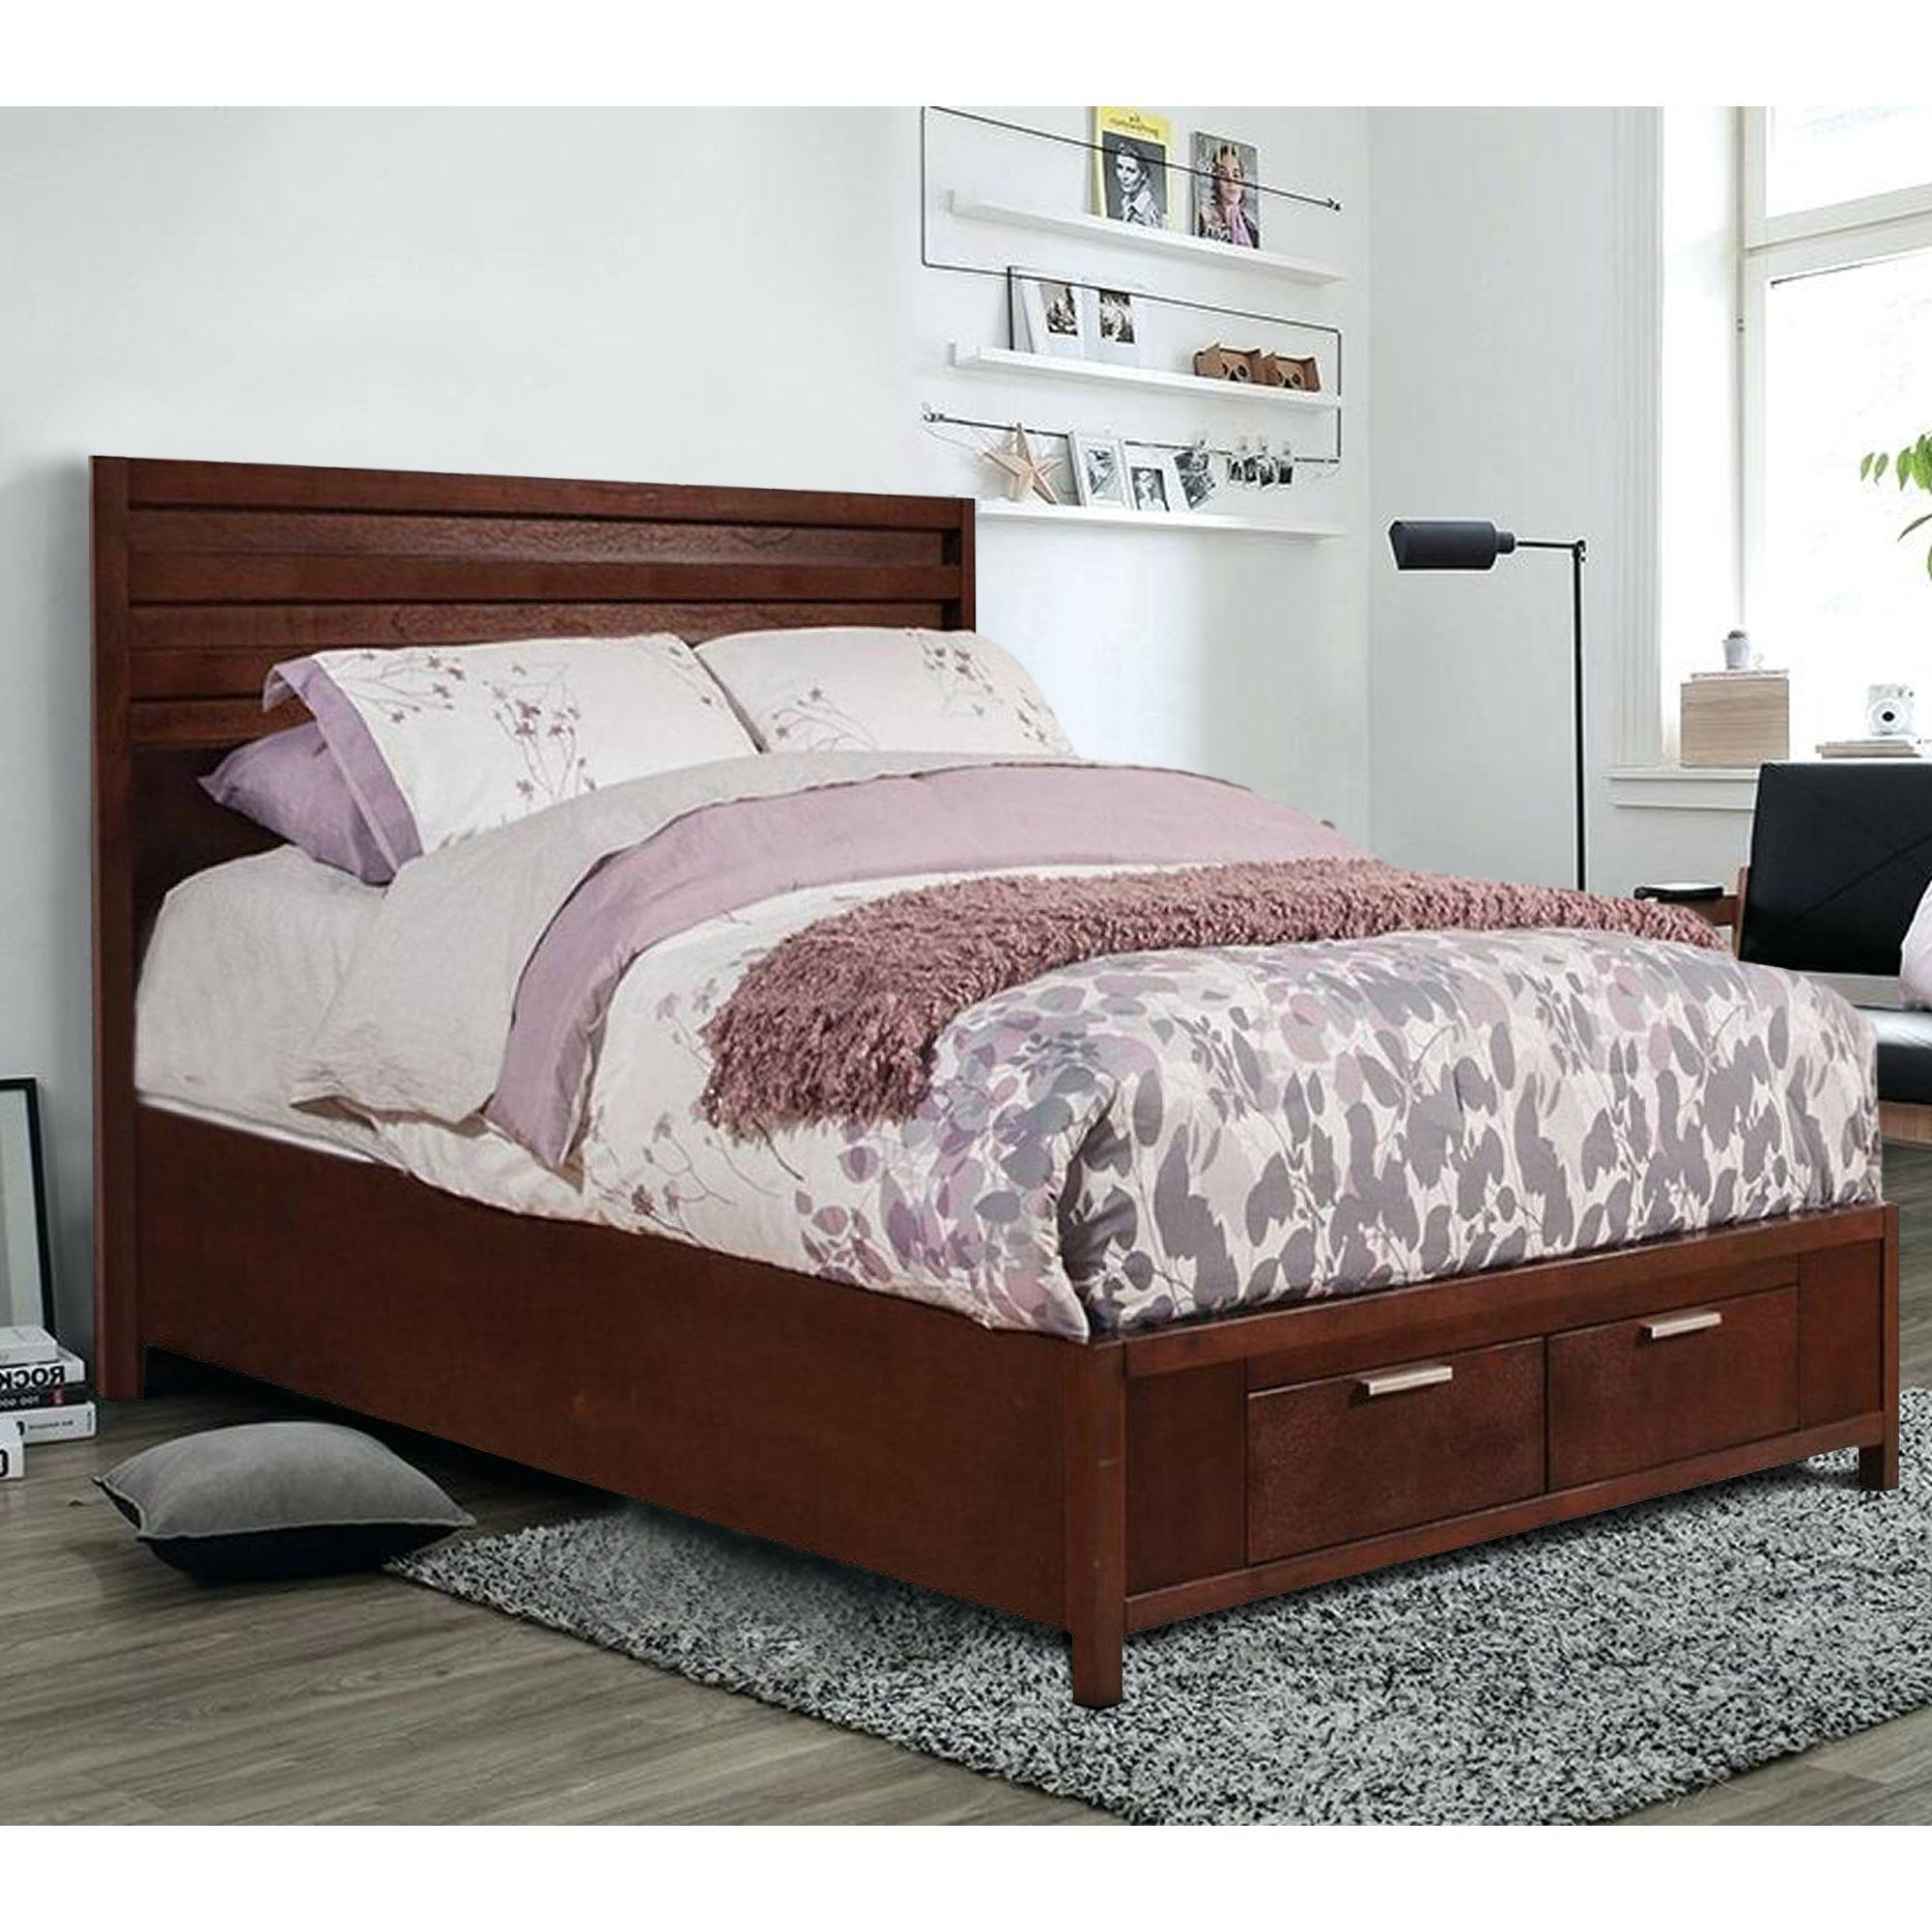 Mahogany Wood Full Size Bed With Storage Brown in 2019